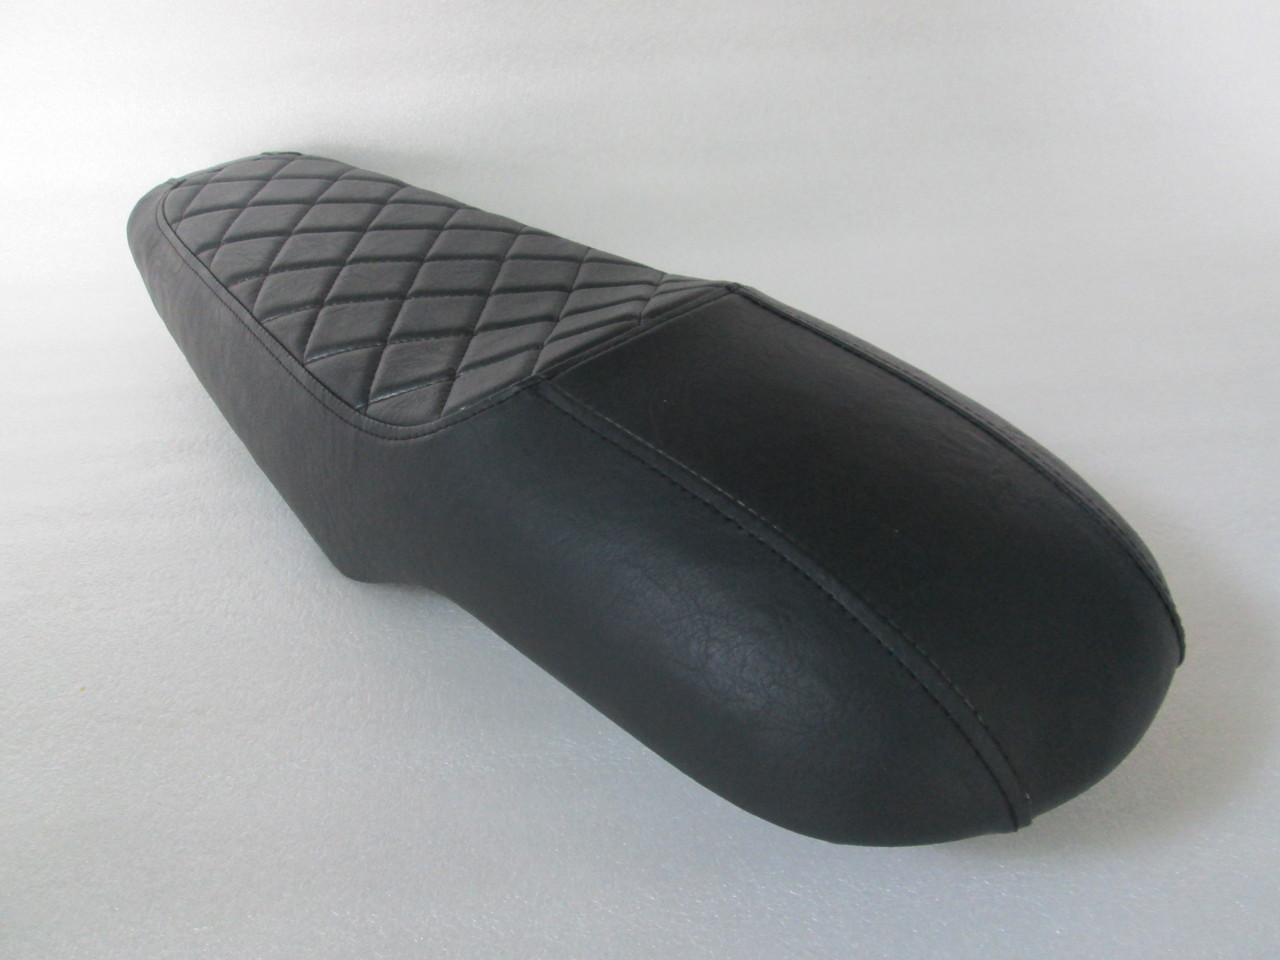 1978 - 1981 Honda CX500 Deluxe Standard or CX400 Classic , diamond pattern cover, with modified seat pan #4155